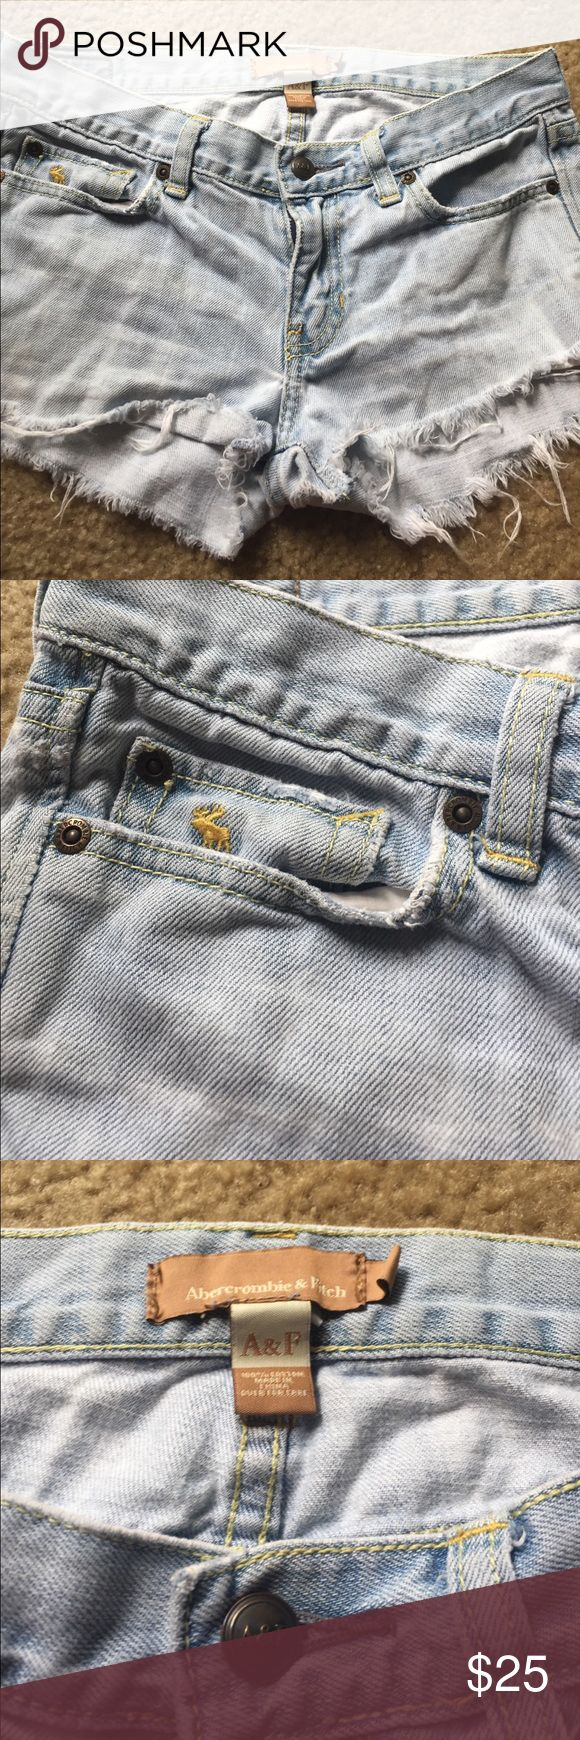 Abercrombie and fitch jean shorts Size 2 Abercrombie and fitch jean shorts. Light wash, distressed Abercrombie & Fitch Shorts Jean Shorts